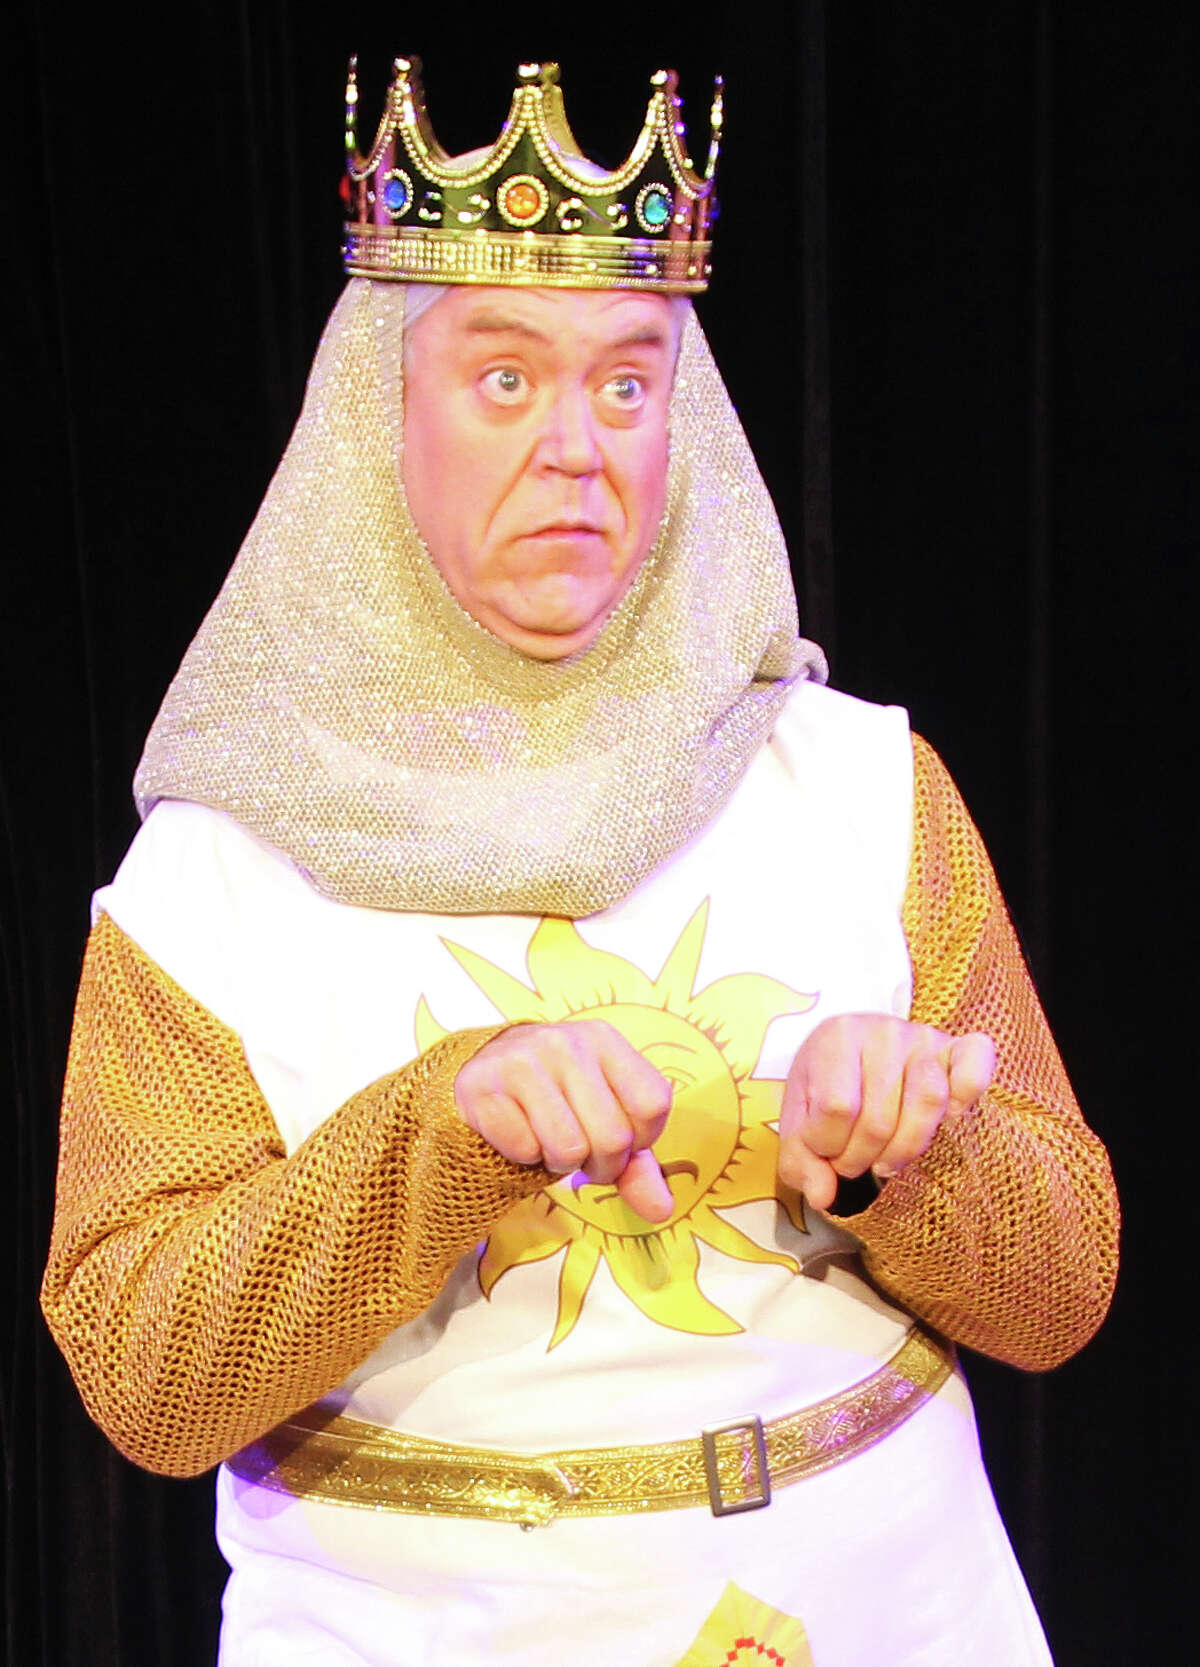 Kevin Murray plays King Arthur in the Woodlawn Theatre's staging of